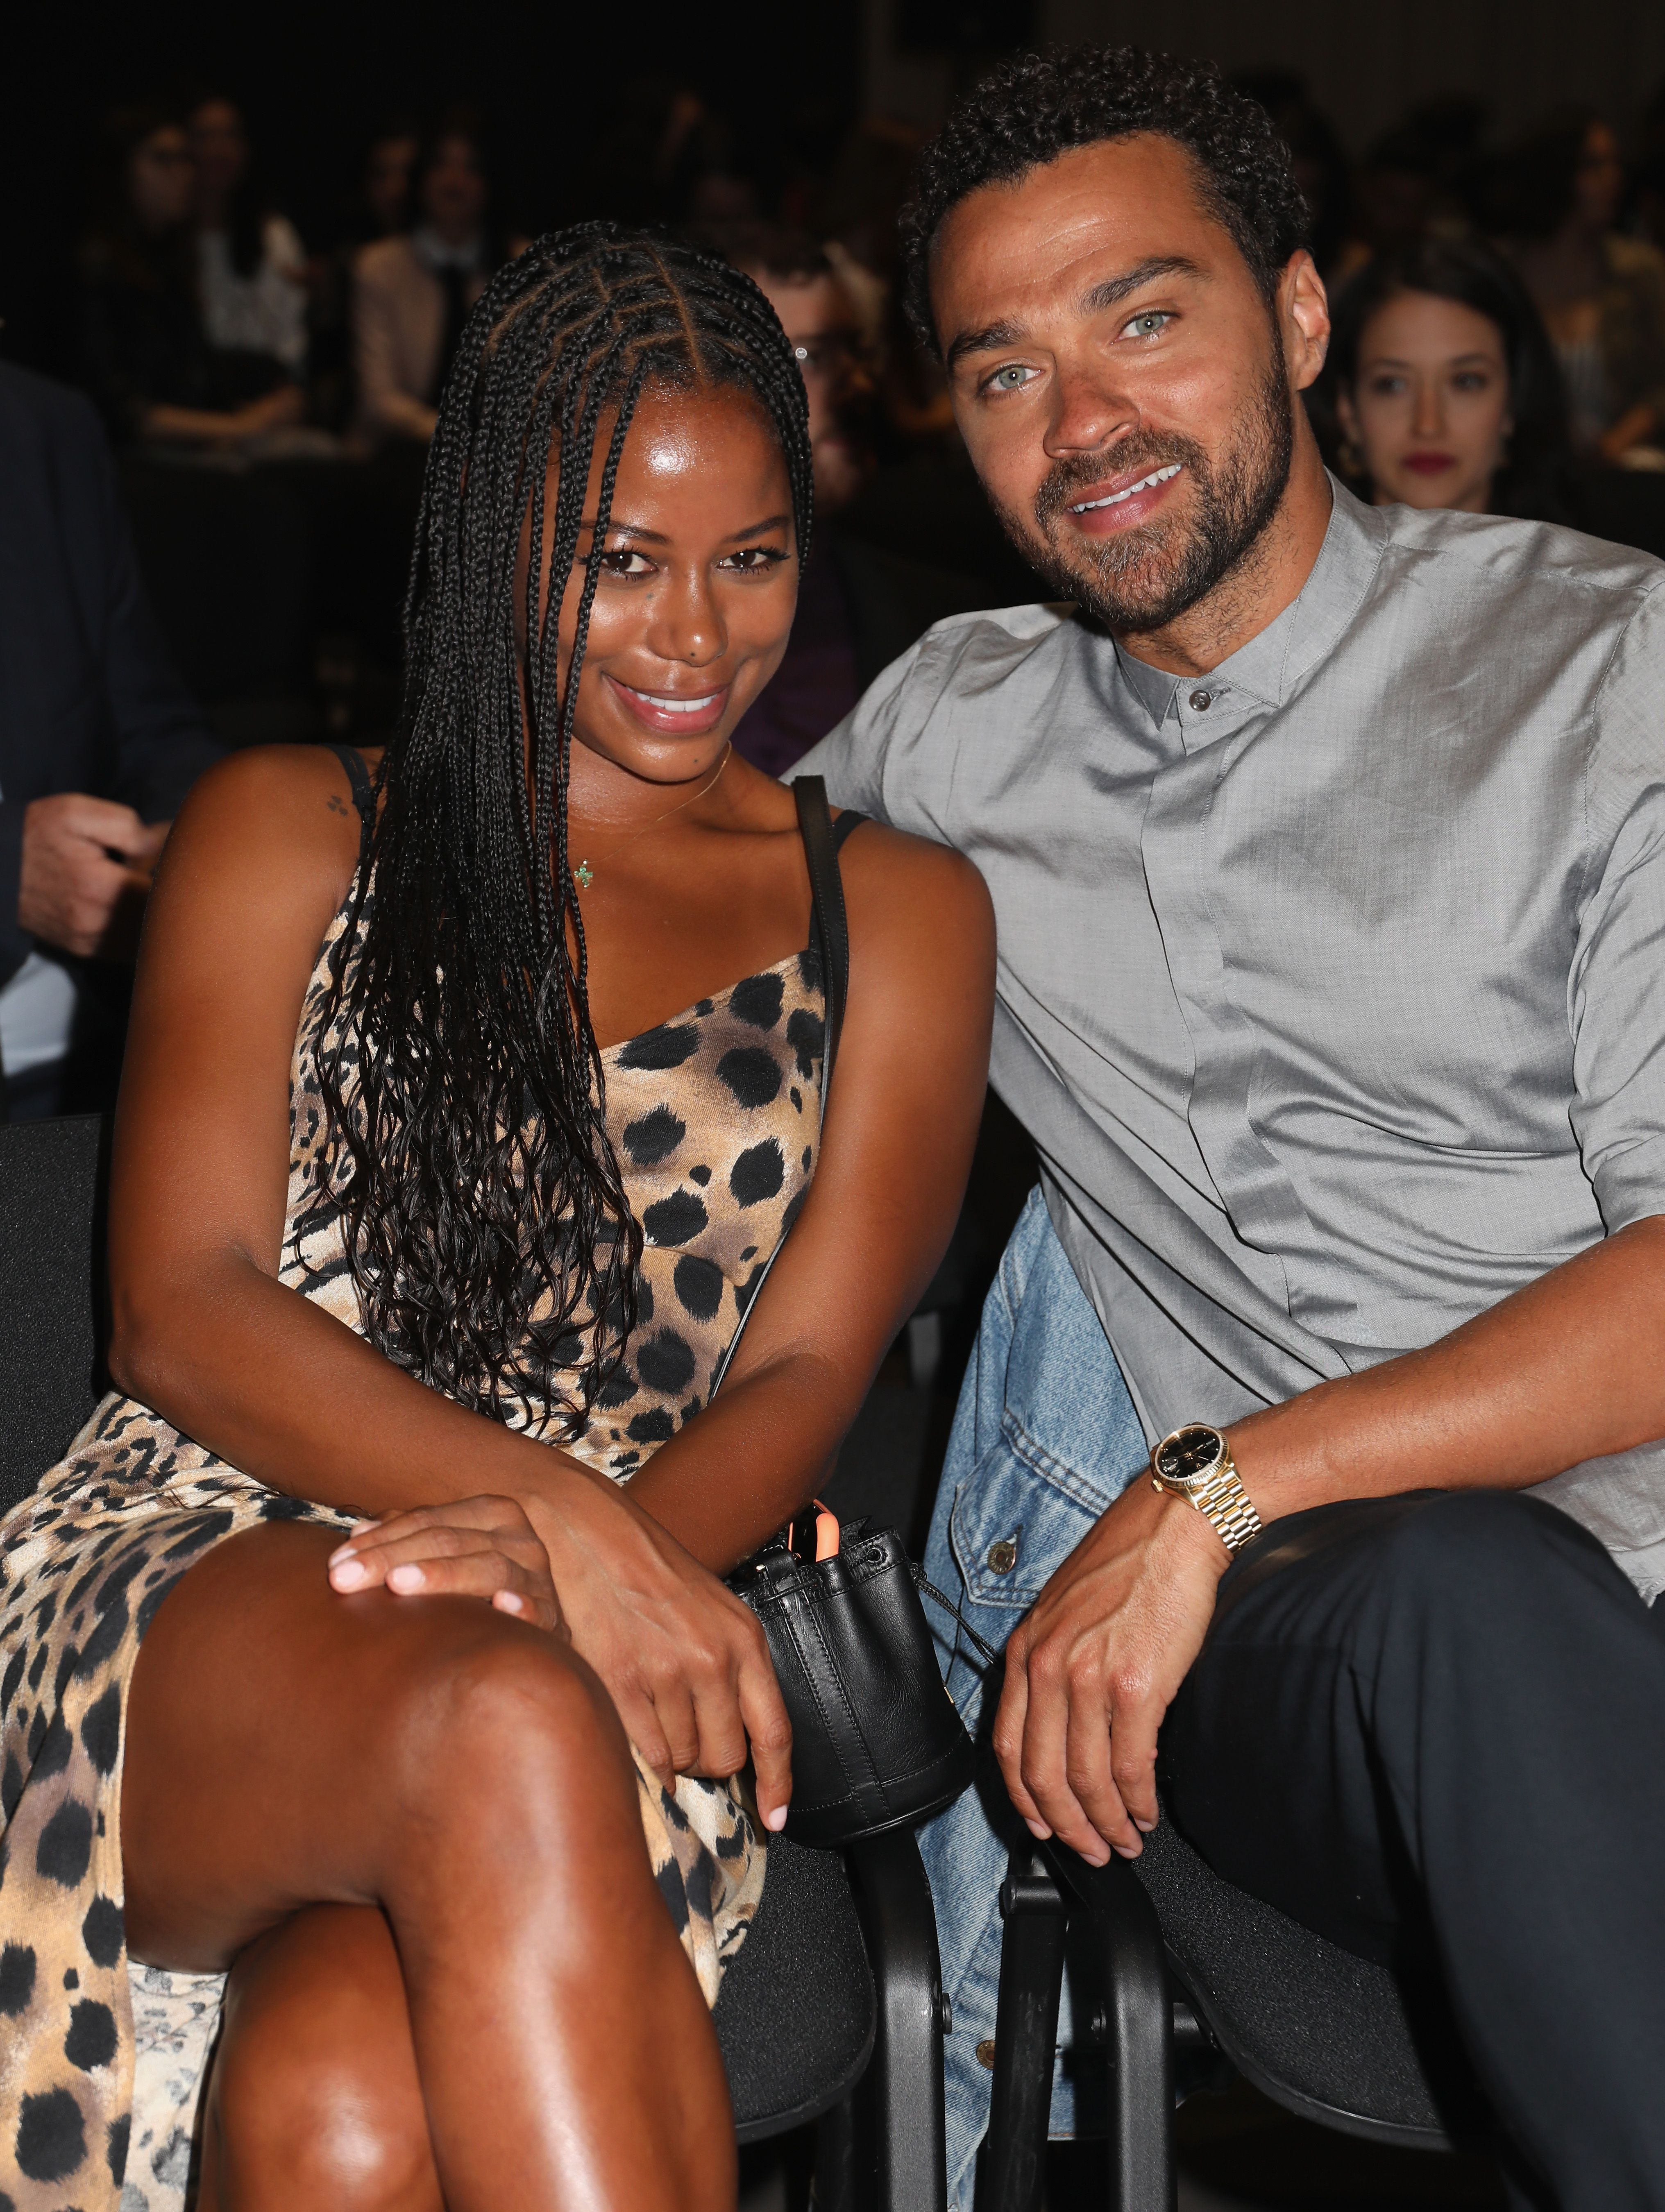 Taylour Paige and Jesse Williams attend the Filming Italy Sardegna Festival 2019 Day 2 at Forte Village Resort on June 14, 2019 in Cagliari, Italy